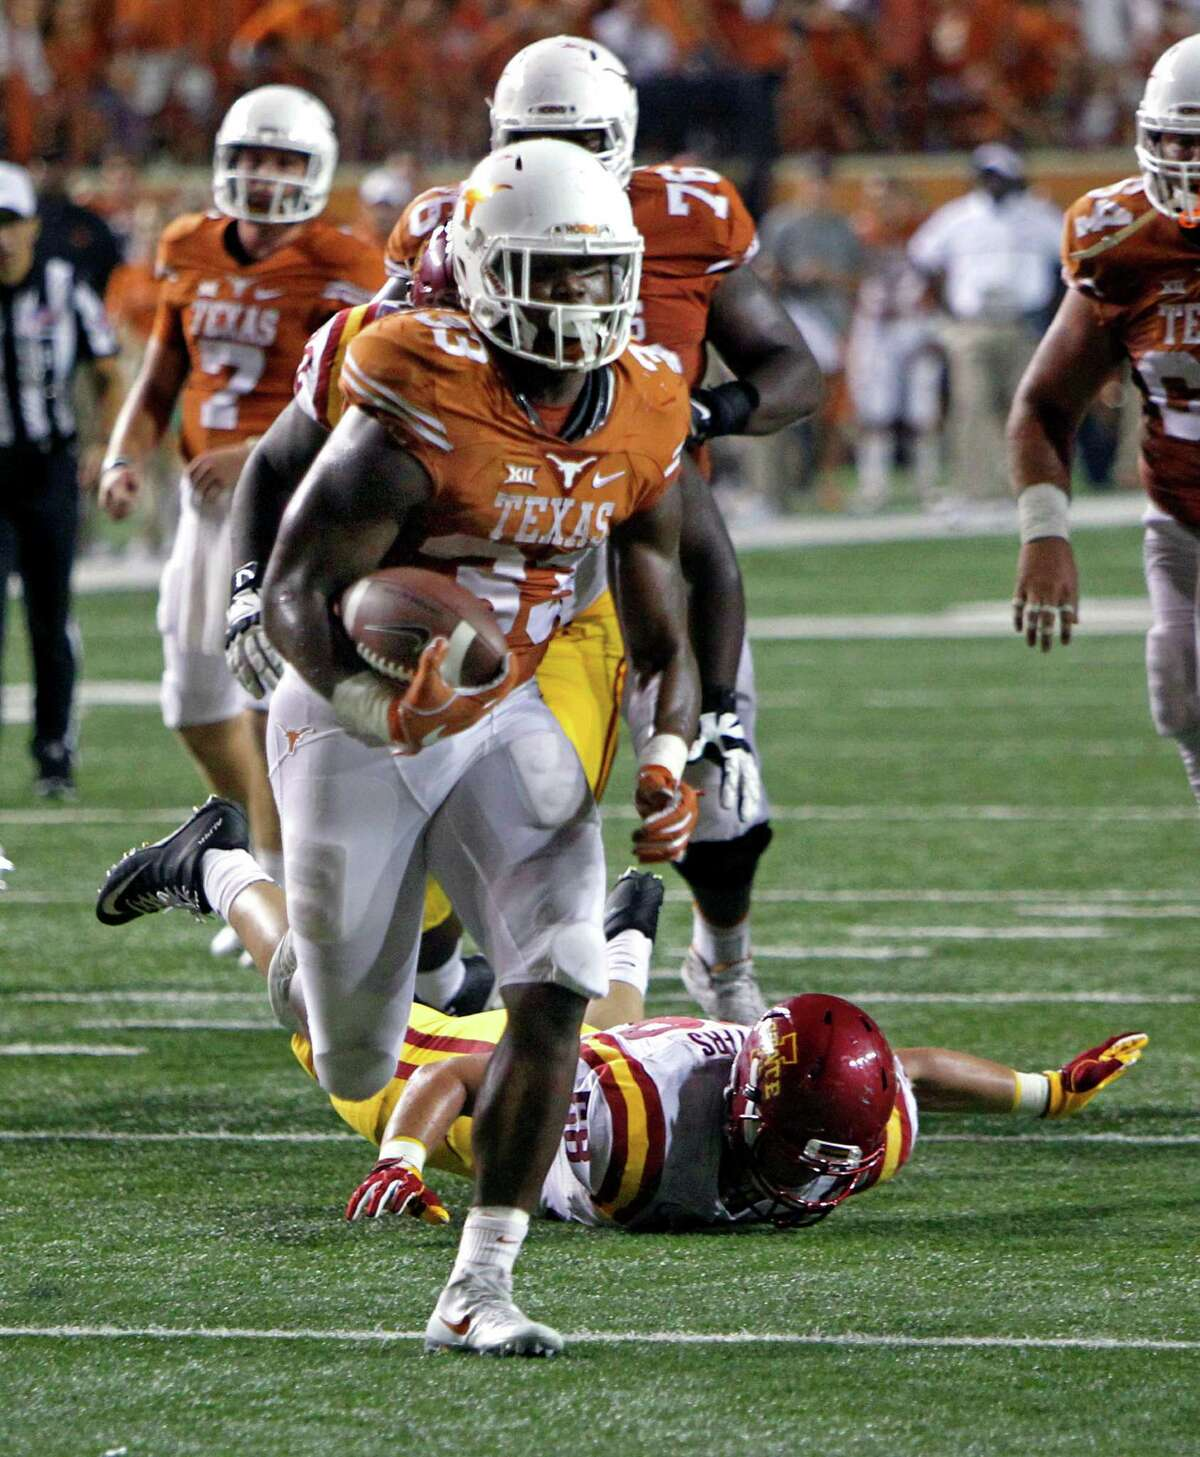 Texas running back D'Onta Foreman (33) runs for a touchdown during the second half of an NCAA college football game against Iowa State, Saturday, Oct. 15, 2016, in Austin, Texas. (AP Photo/Michael Thomas)